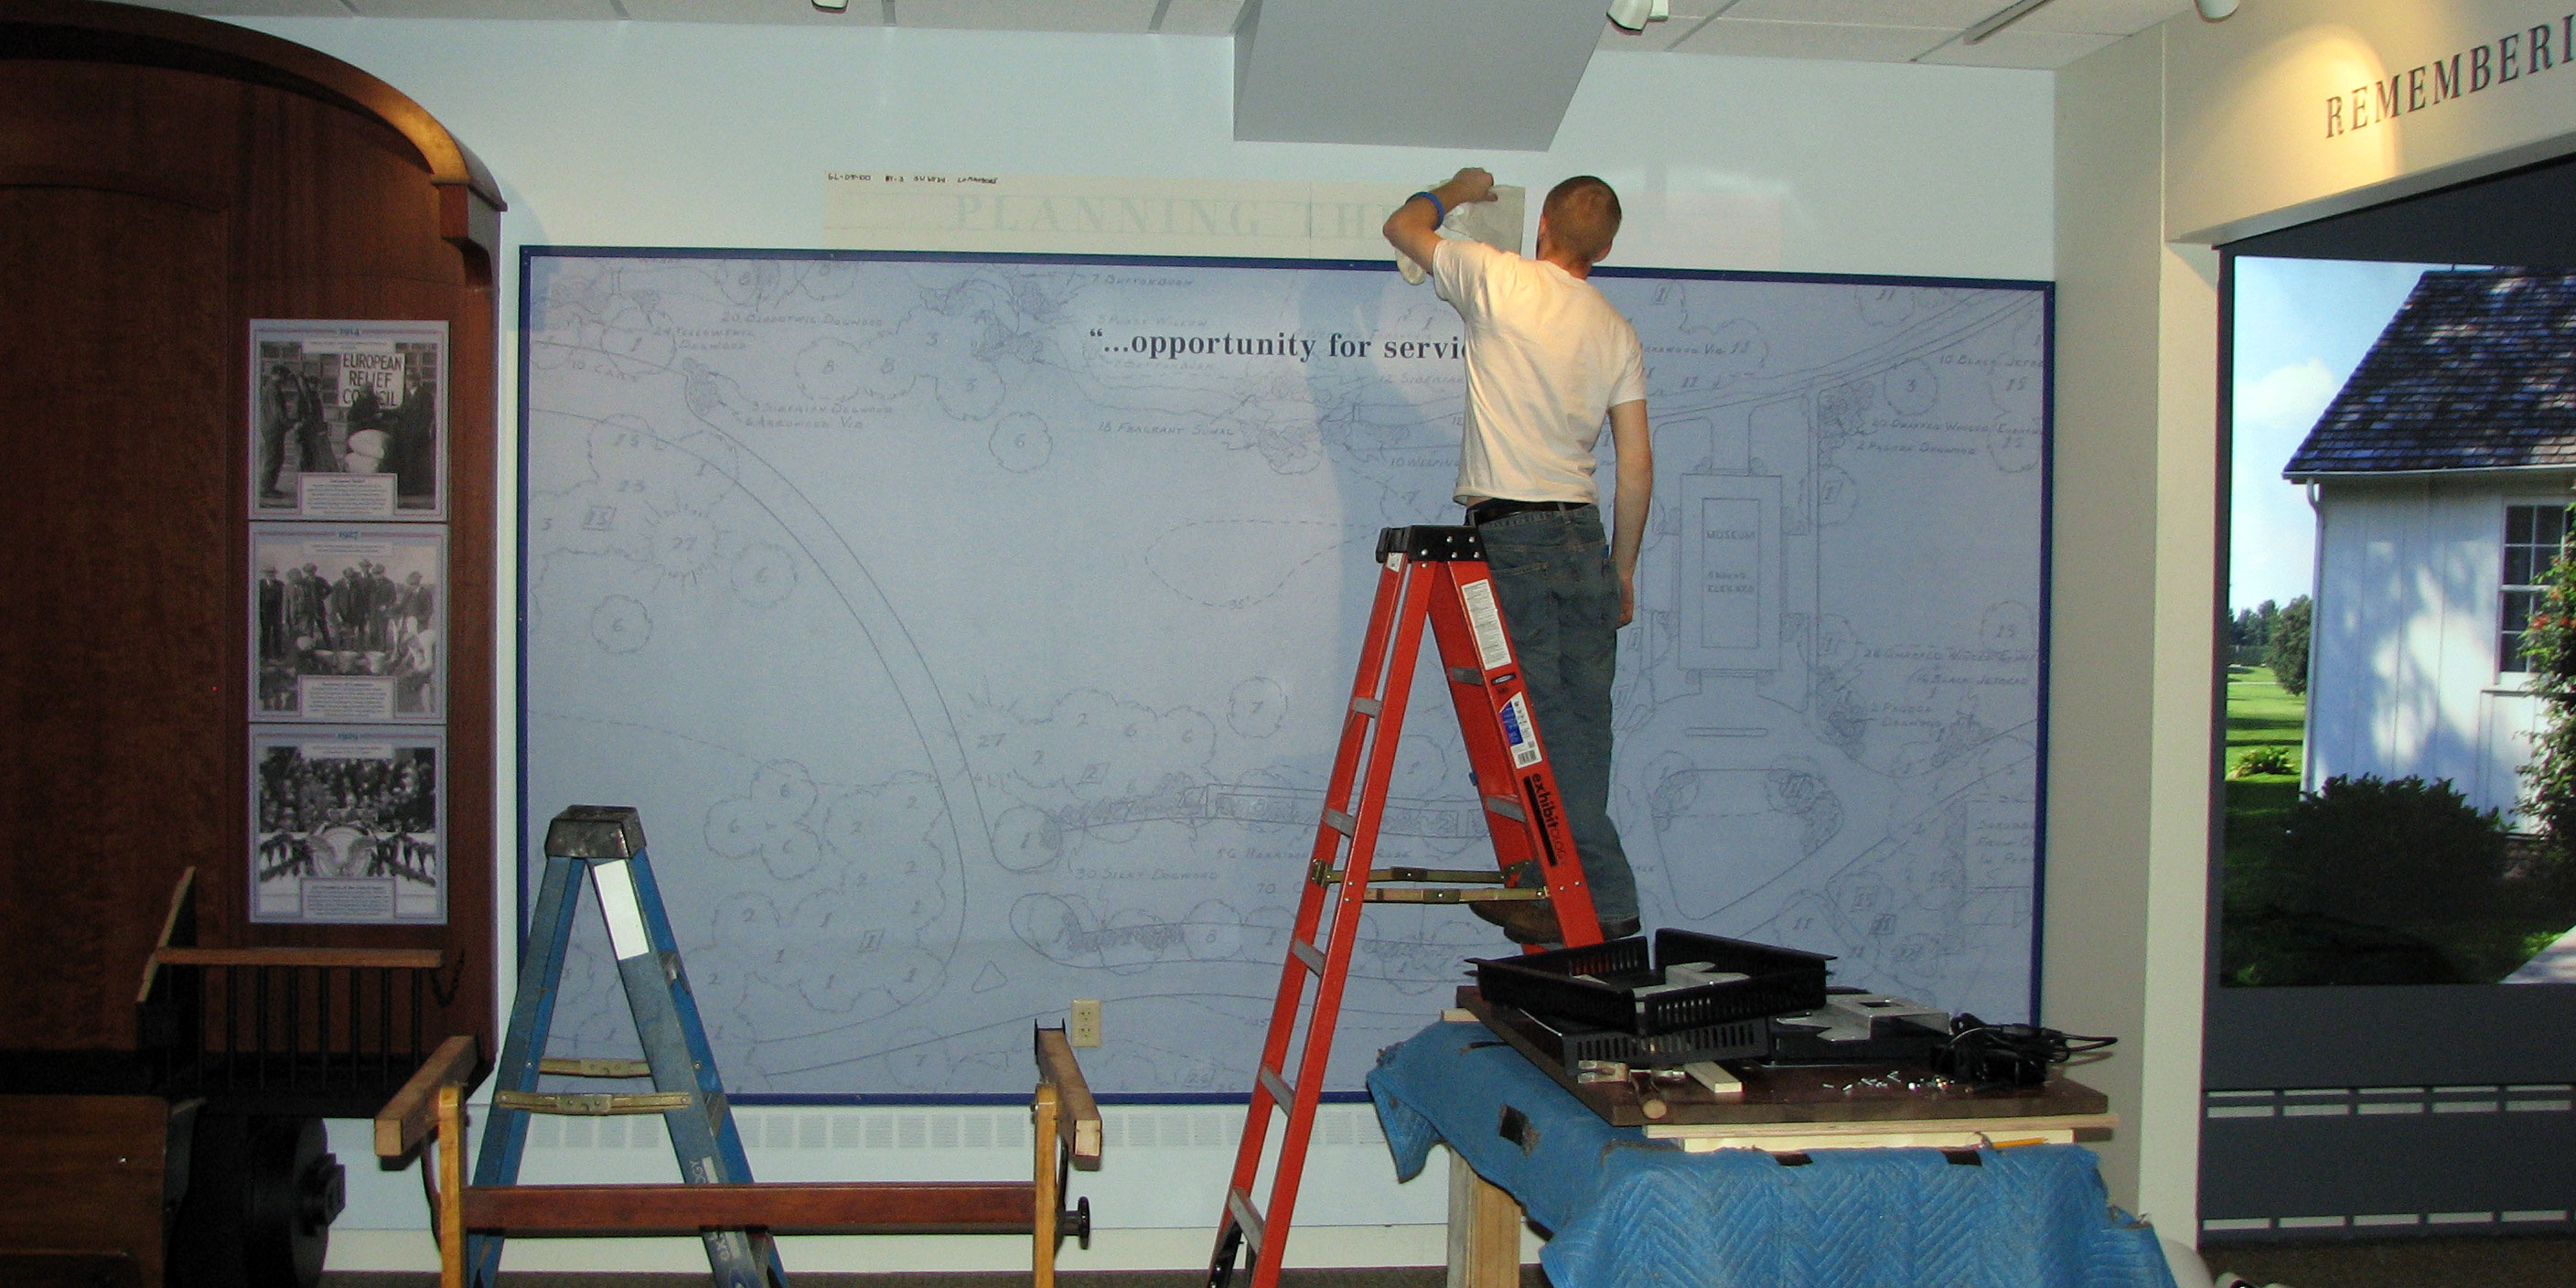 A man on a ladder stencils a heading on a museum exhibit under construction.